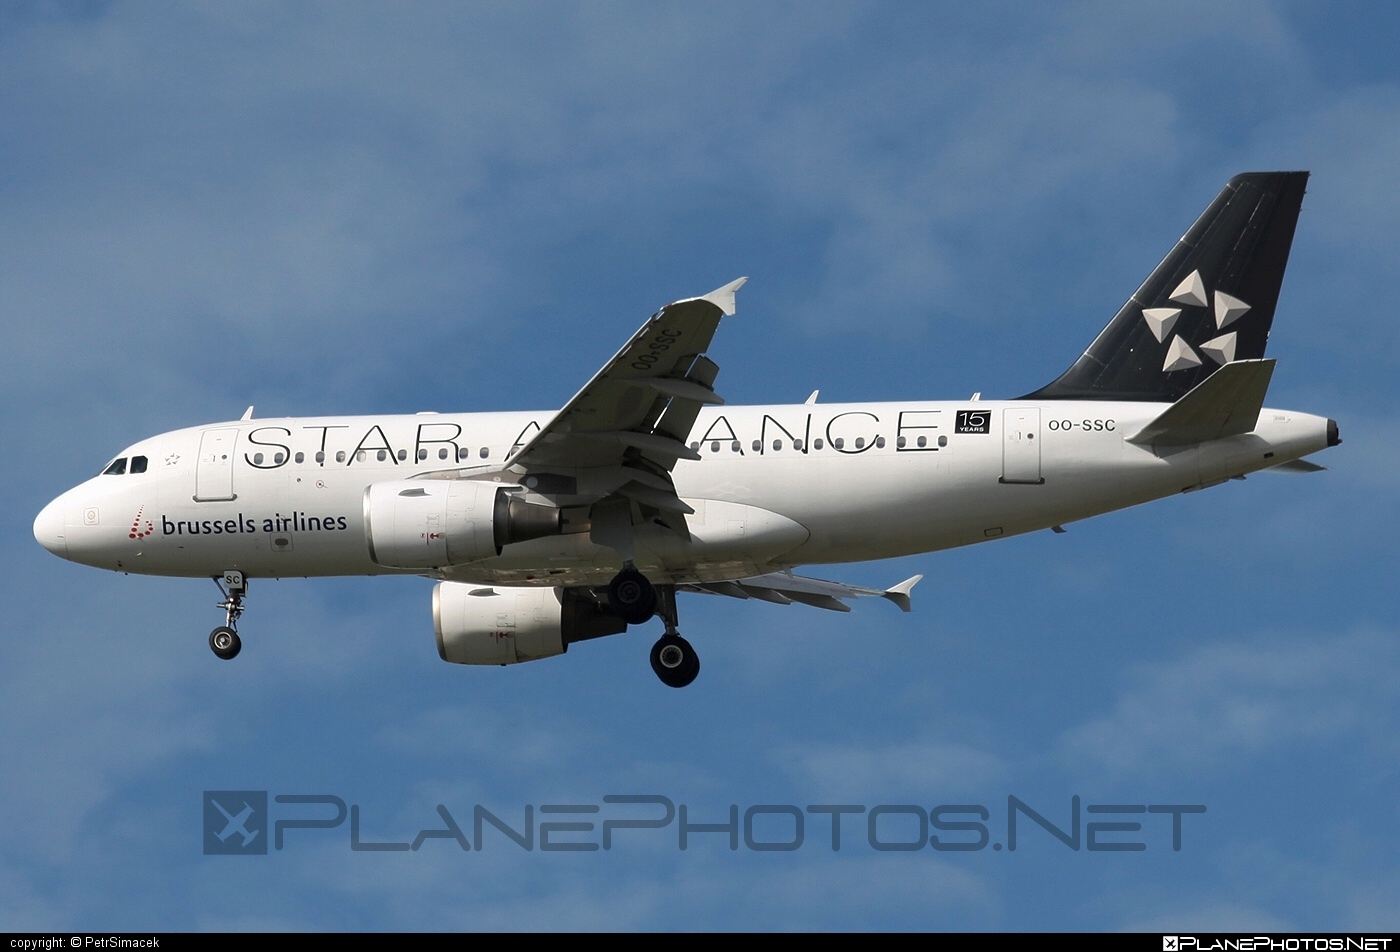 Airbus A319-112 - OO-SSC operated by Brussels Airlines #a319 #a320family #airbus #airbus319 #brusselsairlines #staralliance